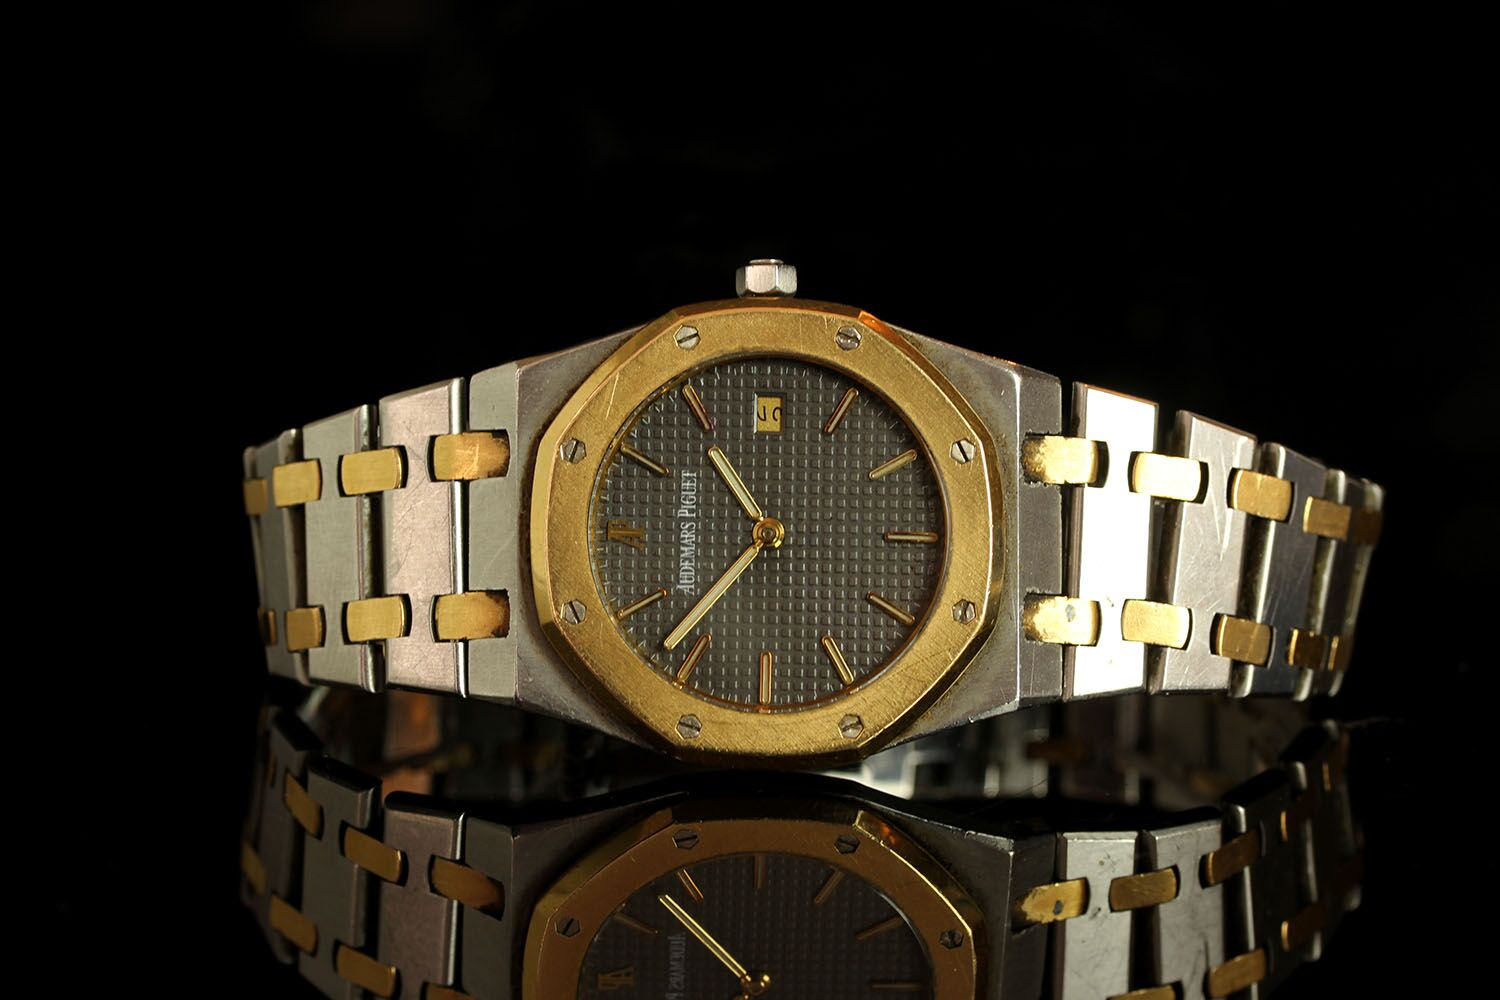 GENTLEMANS VINTAGE AUDEMAR PIGUET ROYAL OAK MODEL NO 1384,round,grey dial with gold hands, gold